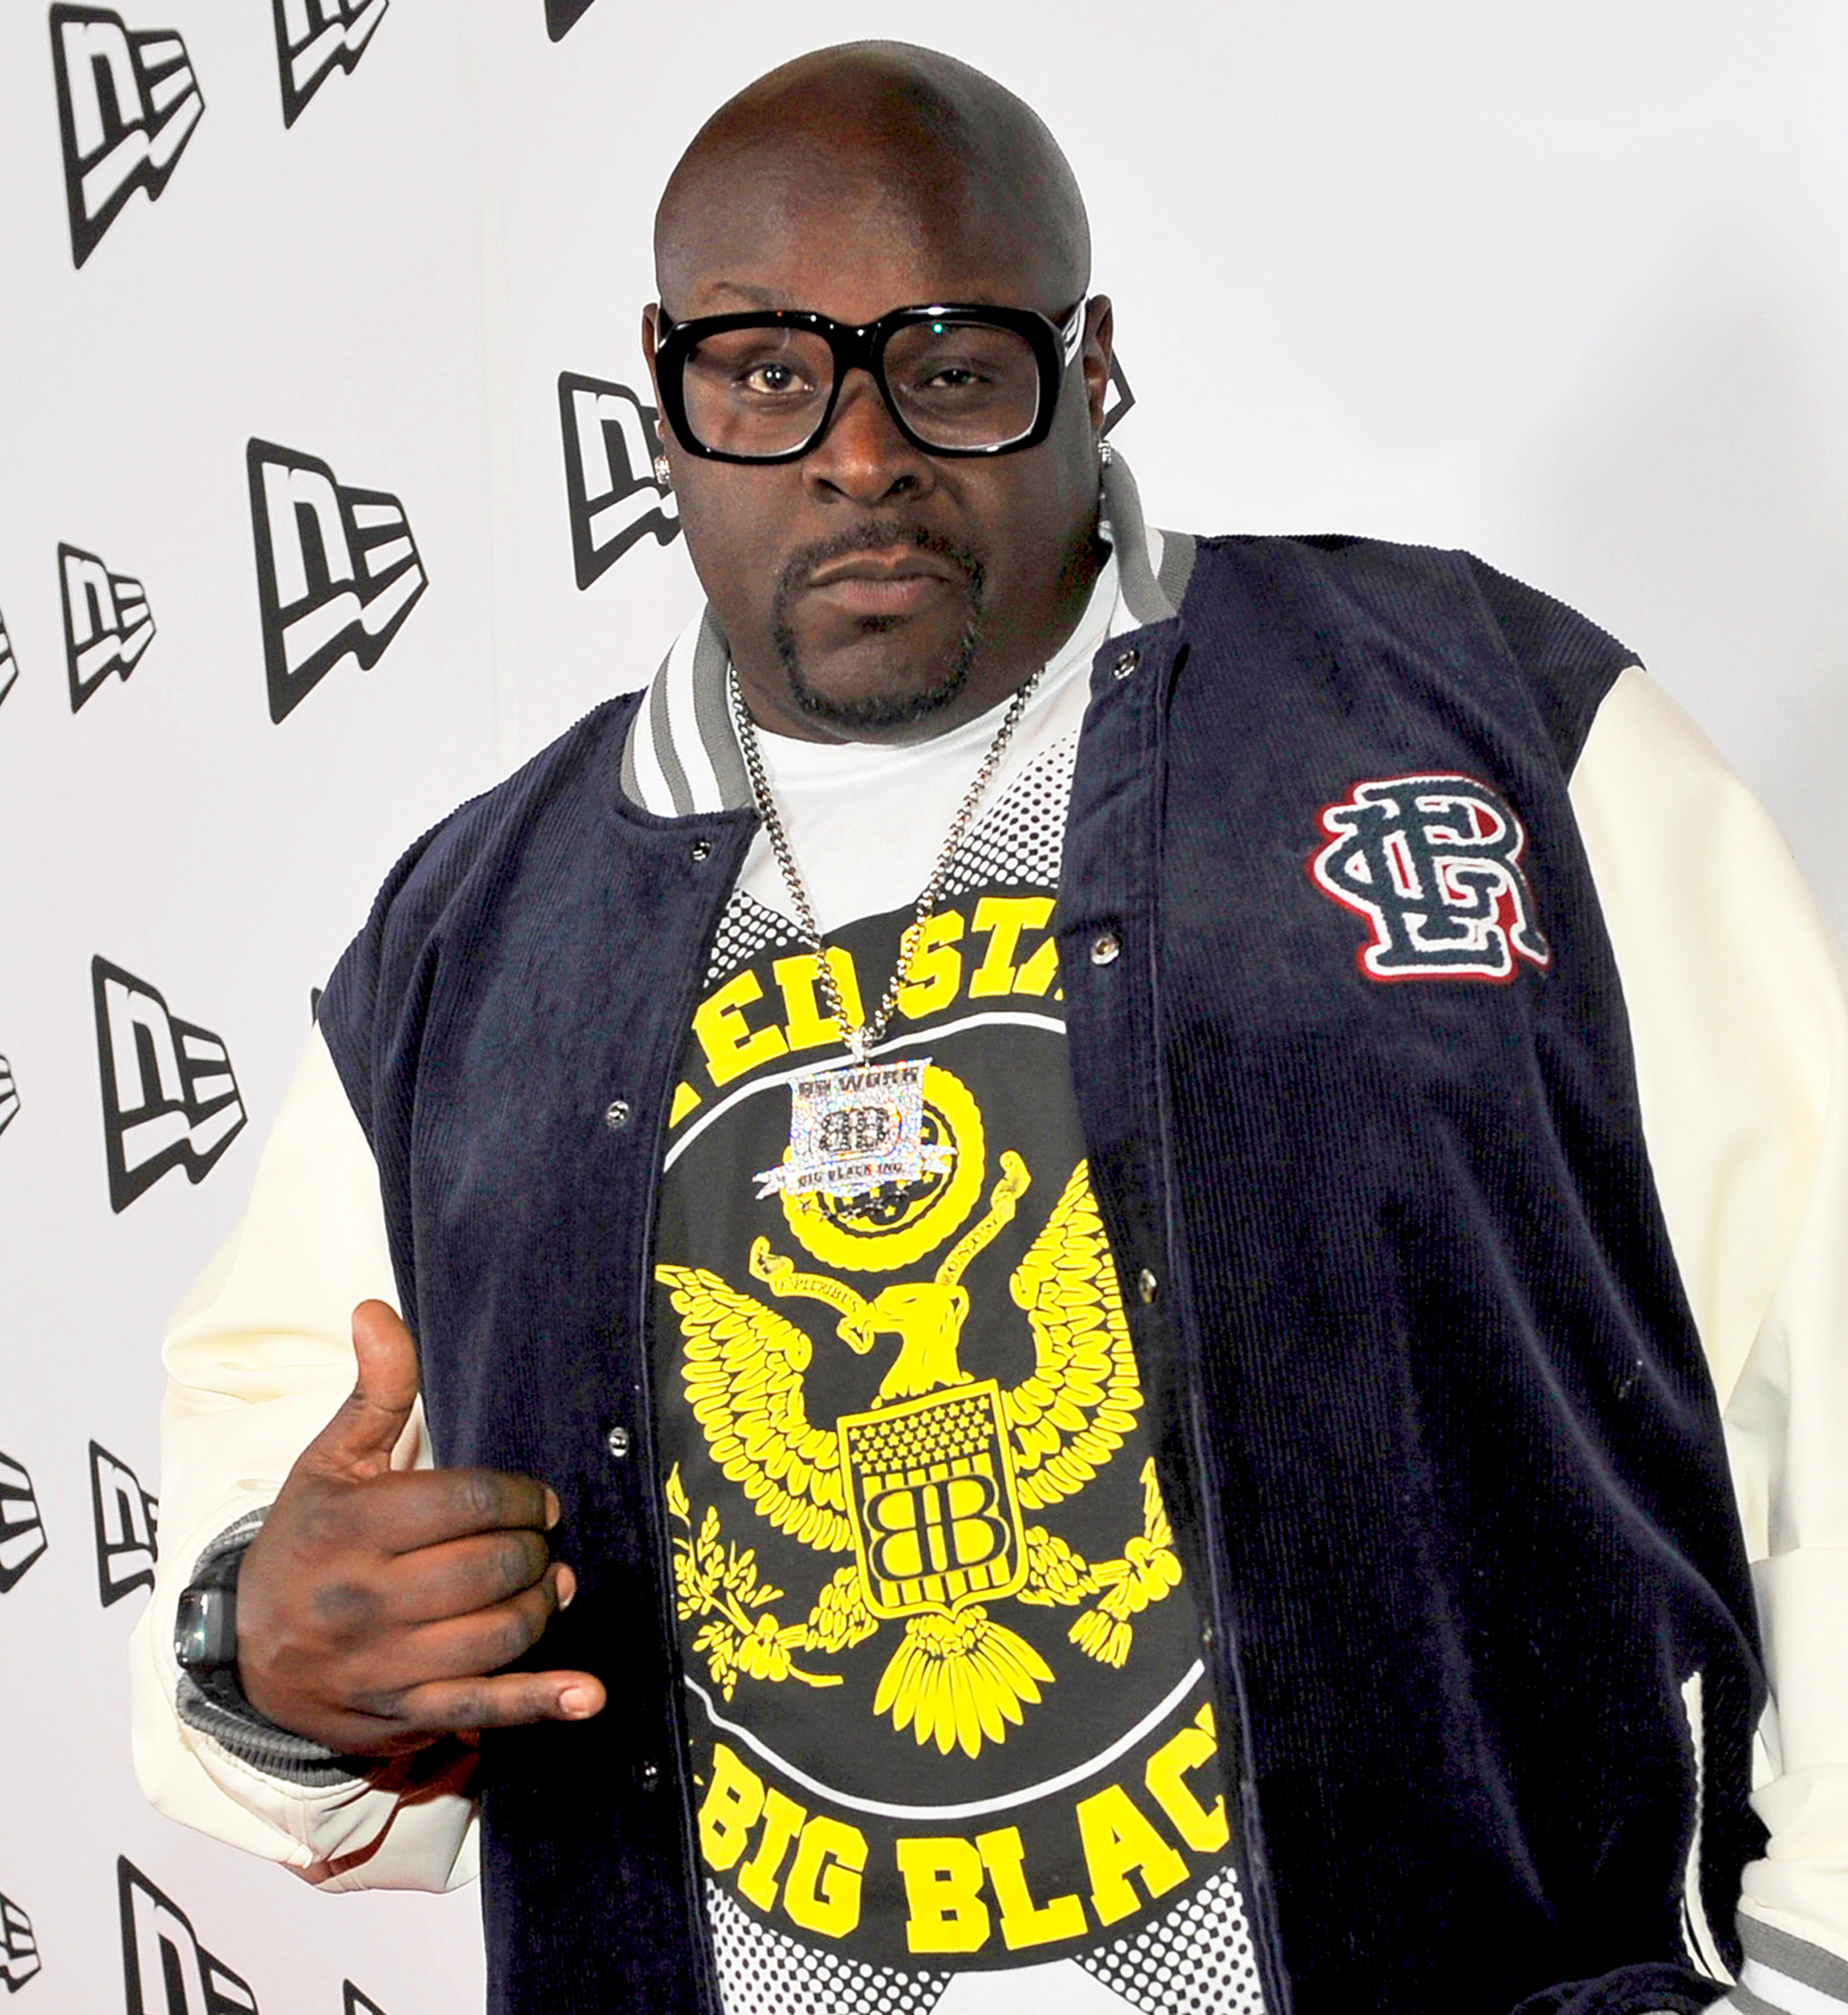 Big black photo 99